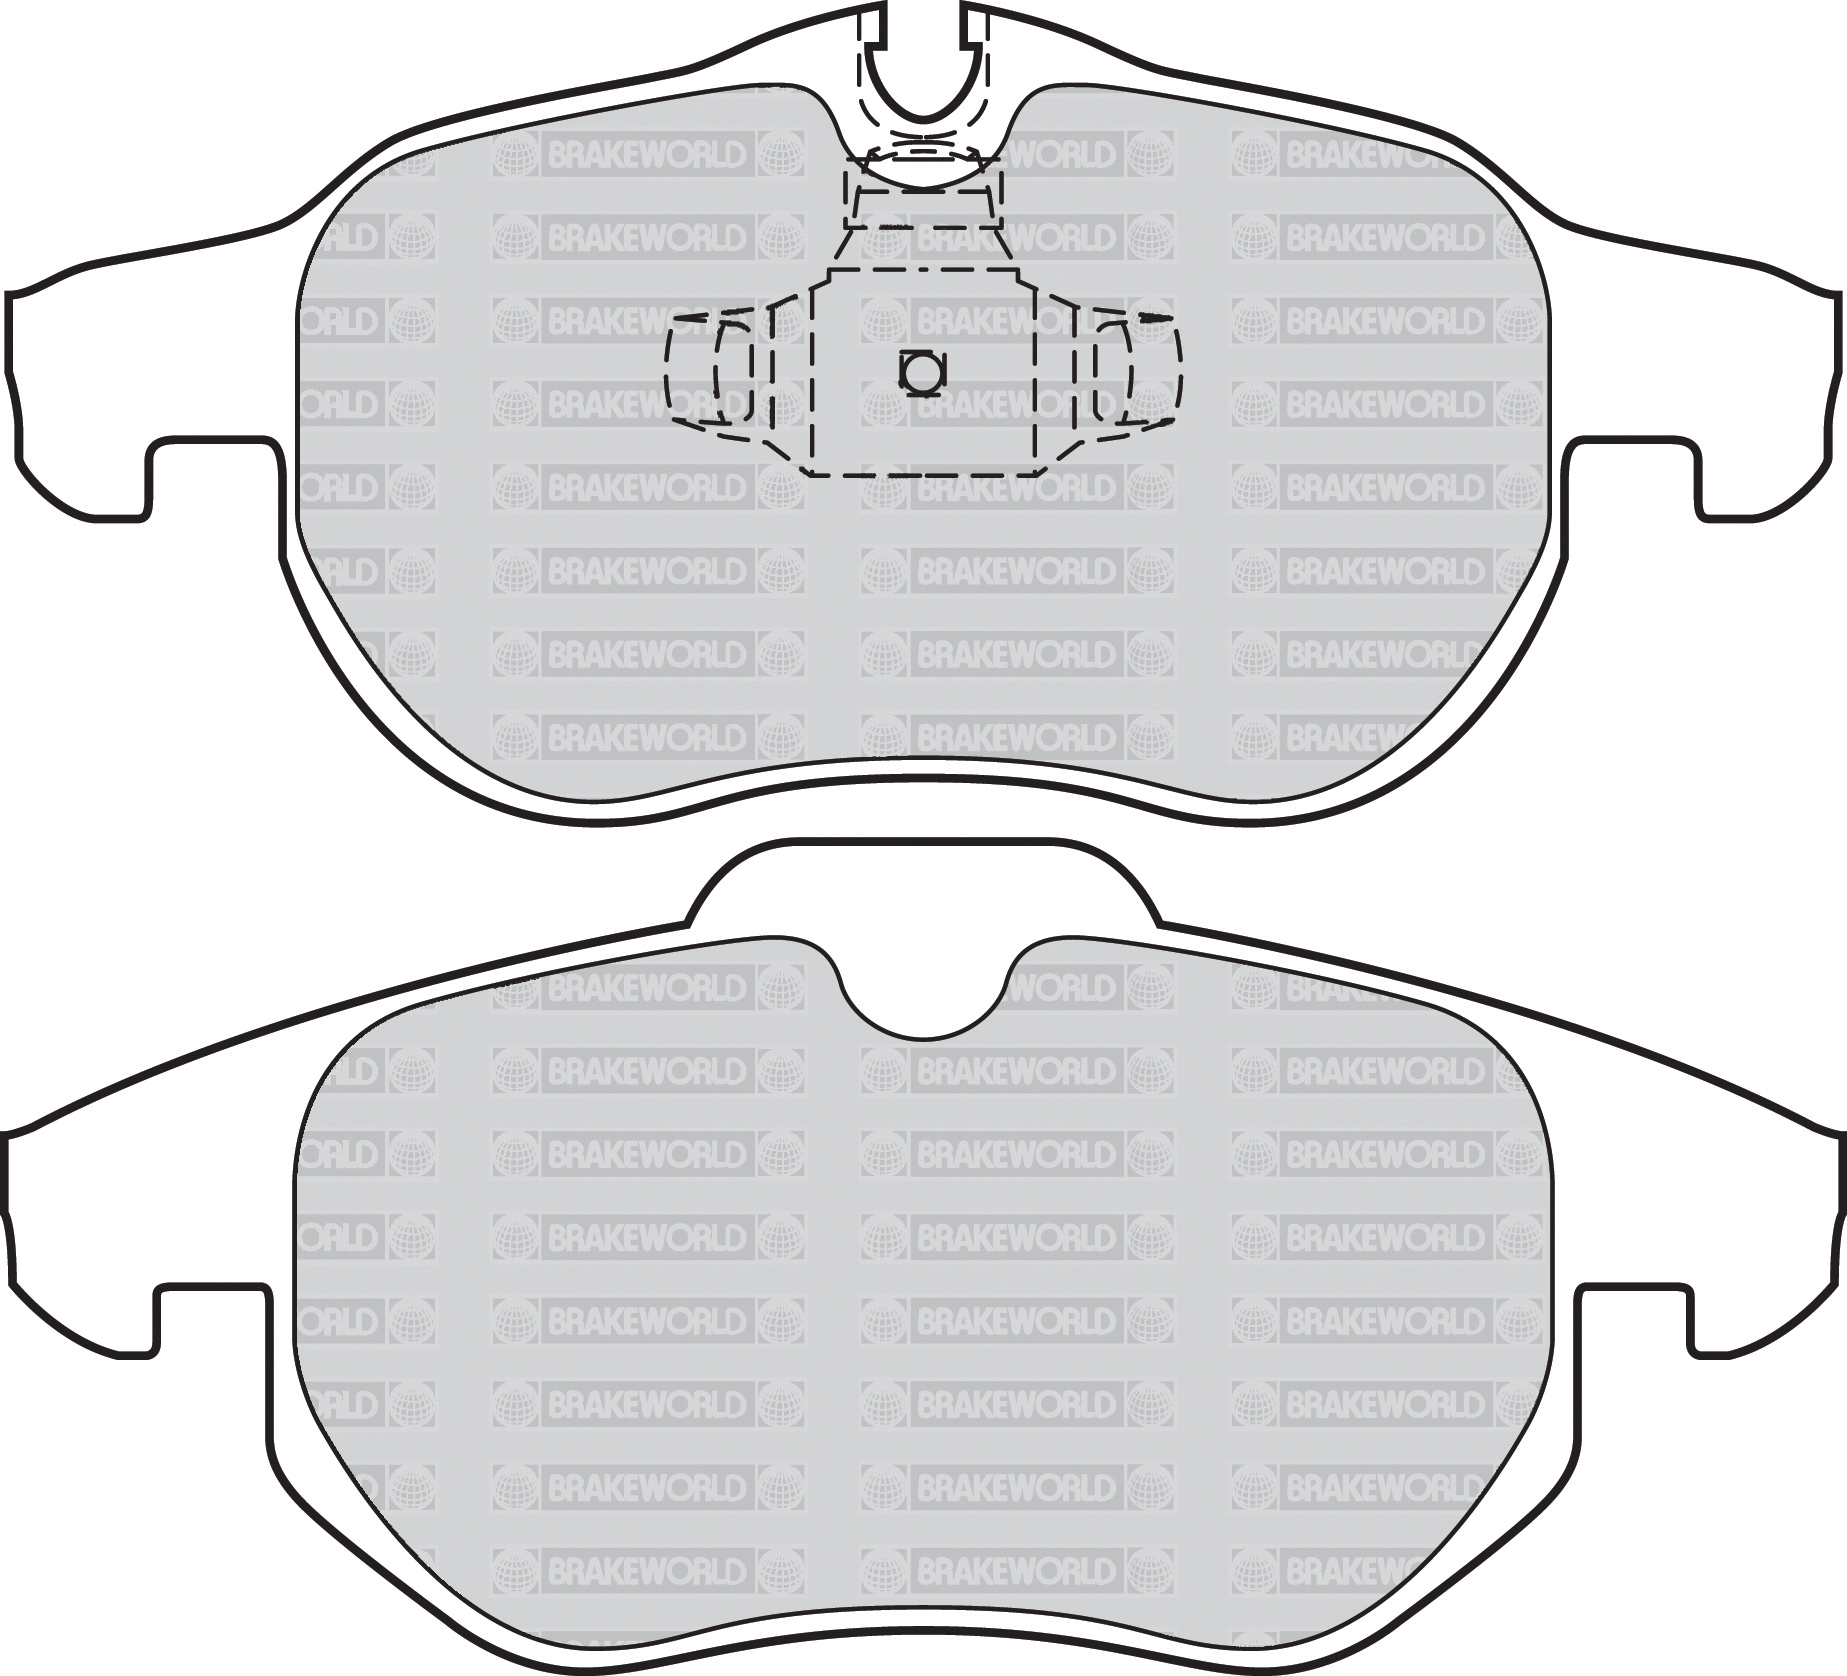 OEM SPEC FRONT DISCS AND PADS 285mm FOR SAAB 9-3 1.9 TD 150 BHP 2004-11